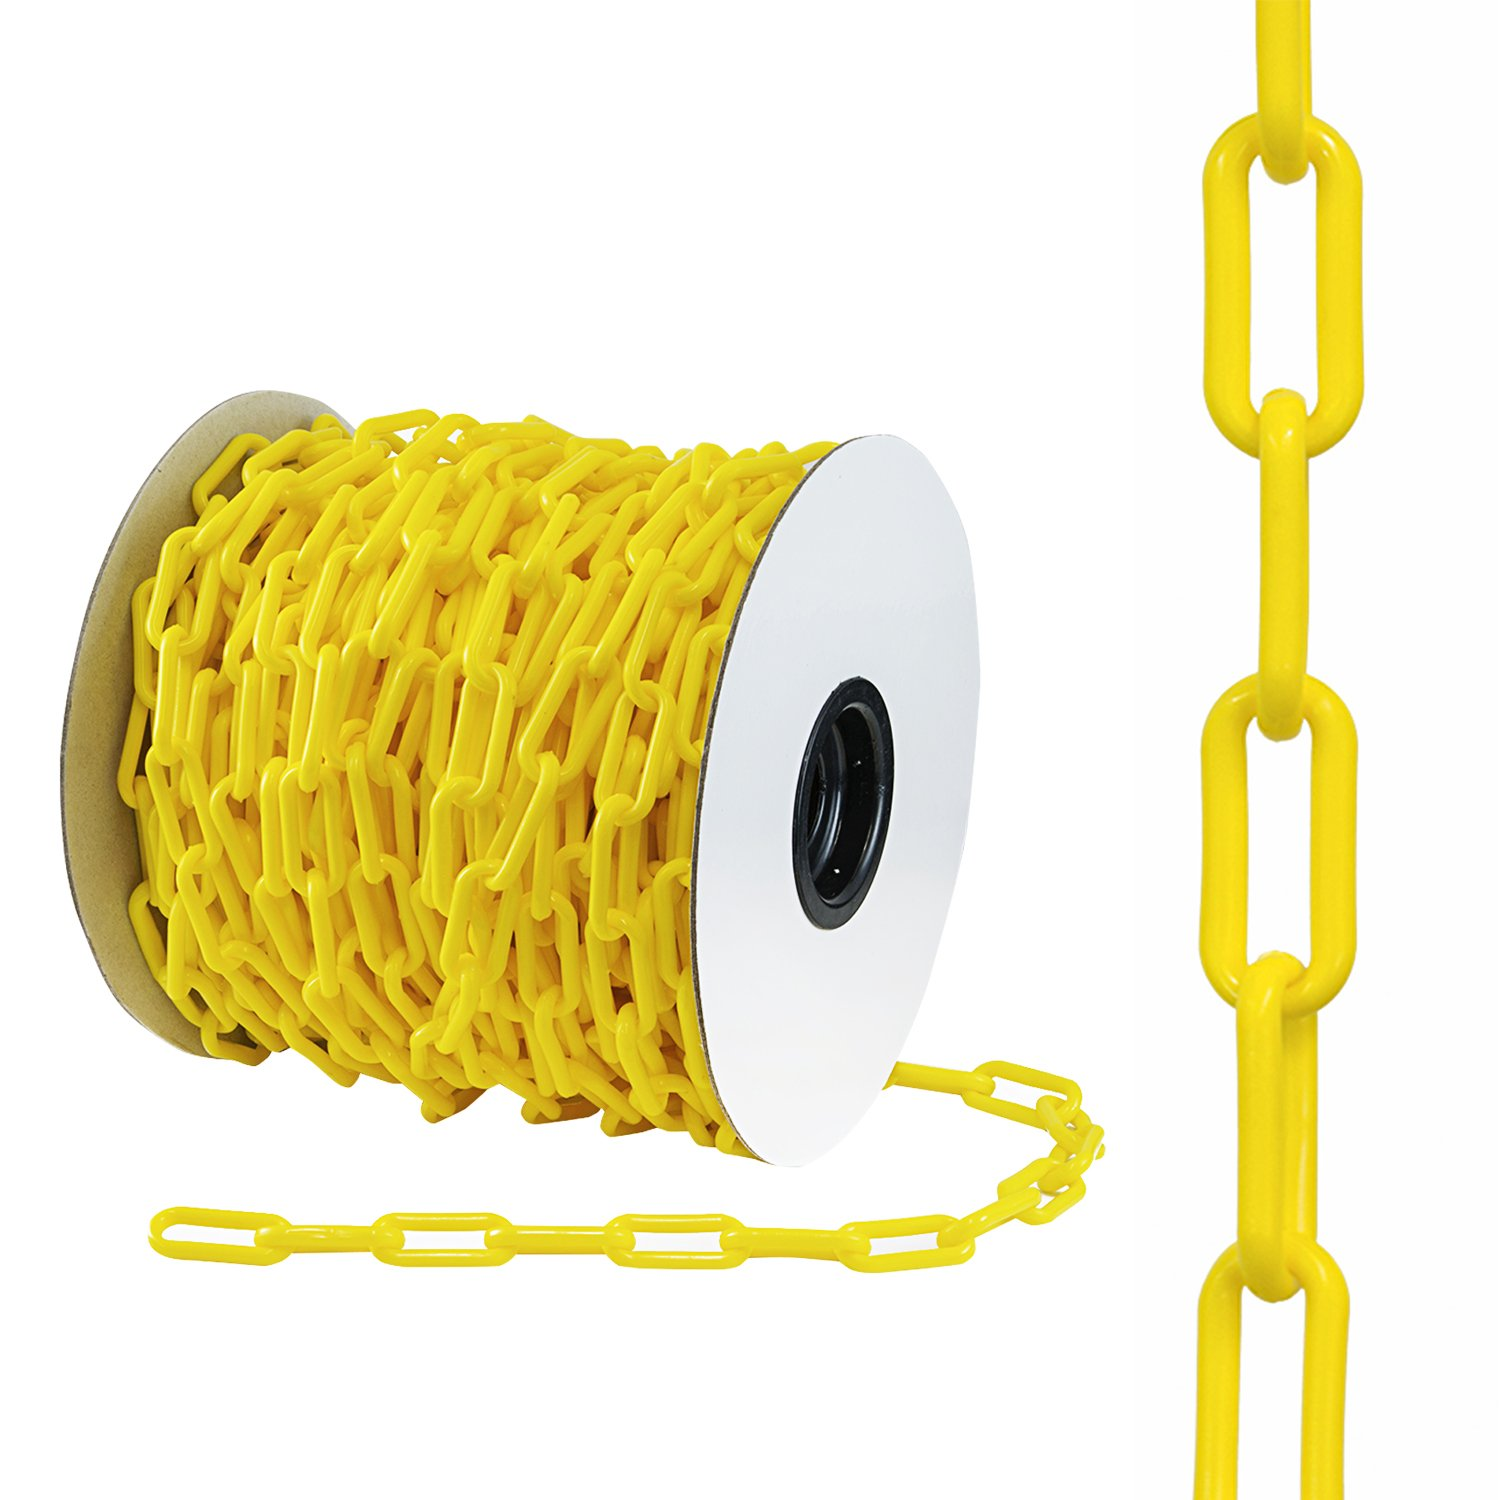 Houseables Plastic Chain, Safety Barrier, 124 Foot, 2'' Links, Light Weight, UV Protected, Accessory for Crowd Control, Queue Line, Decoration, Chains Link Fence (Yellow)